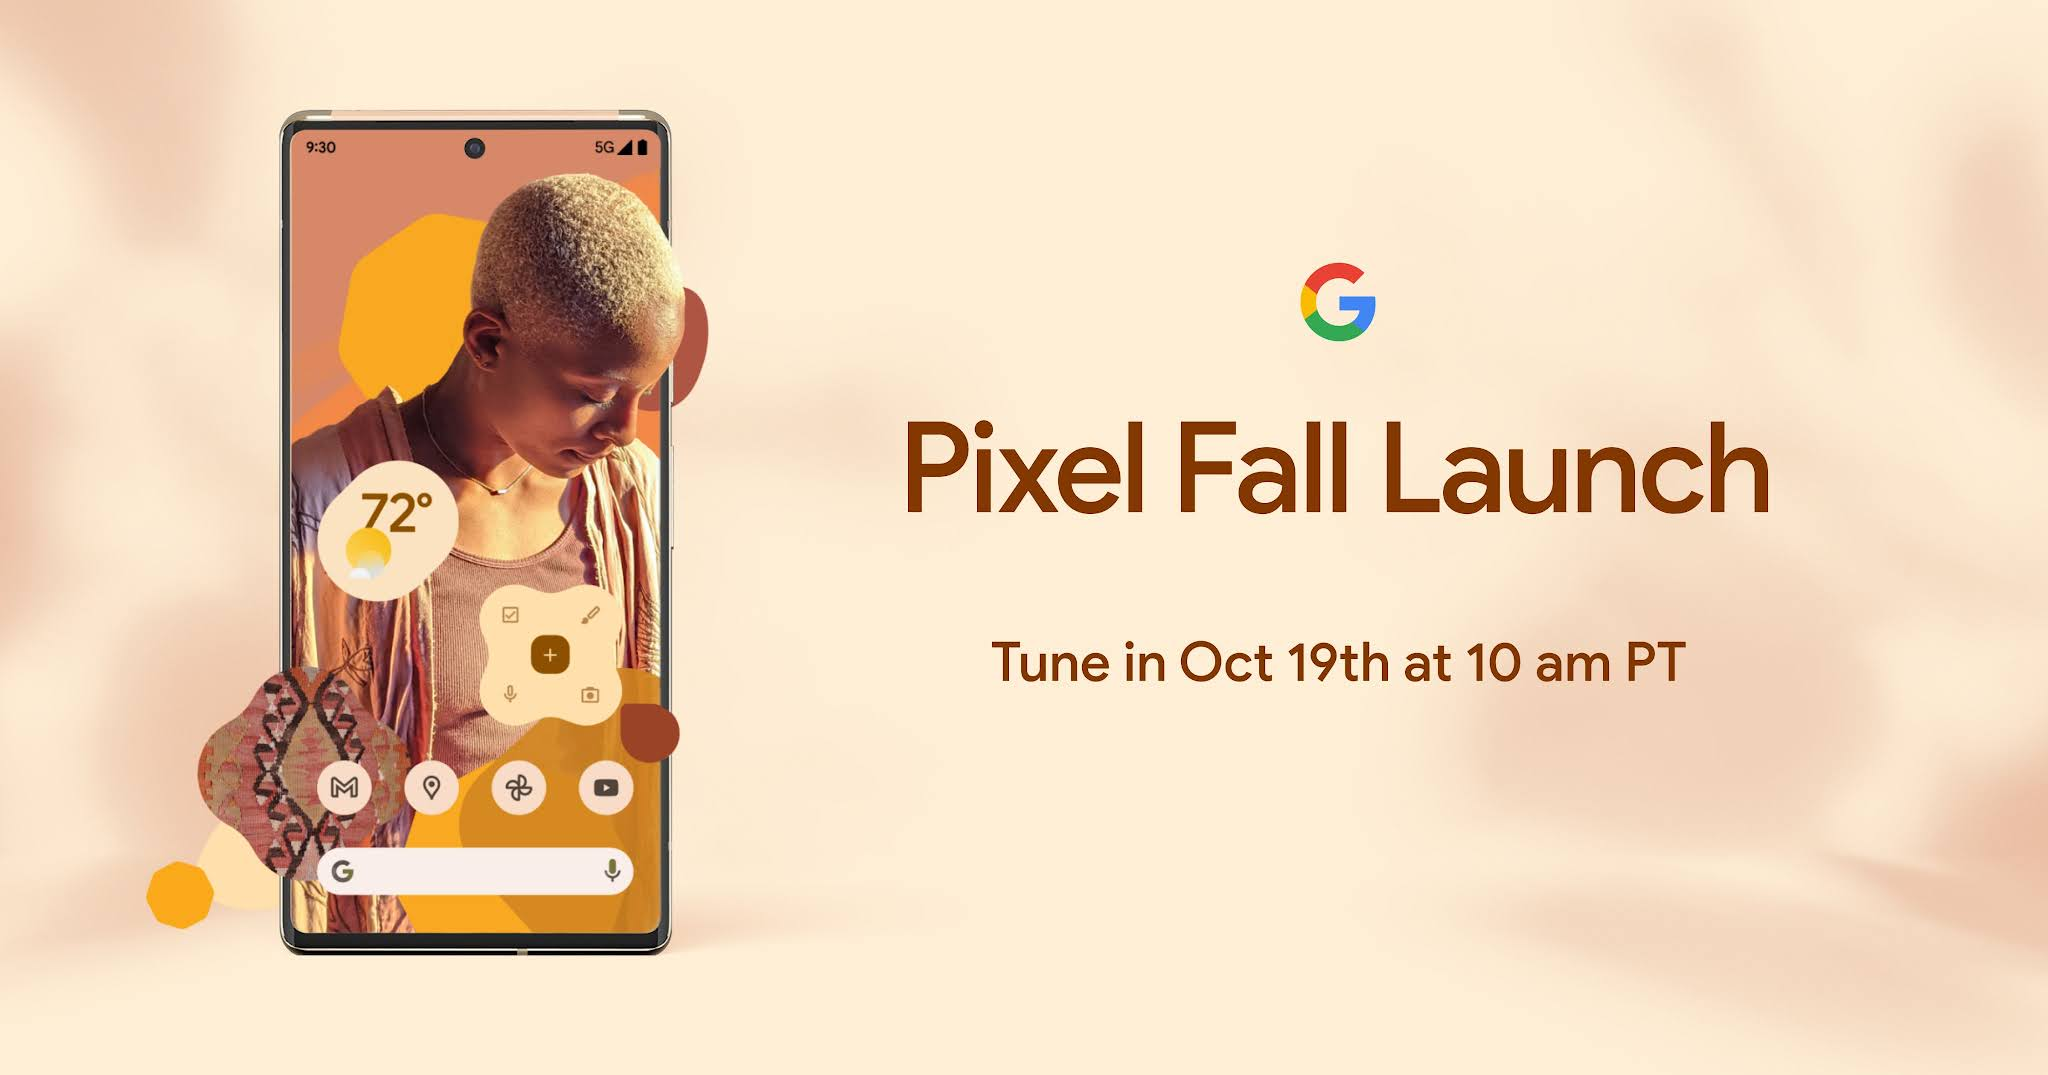 Google announces the Pixel 6 virtual launch event will be on October 19